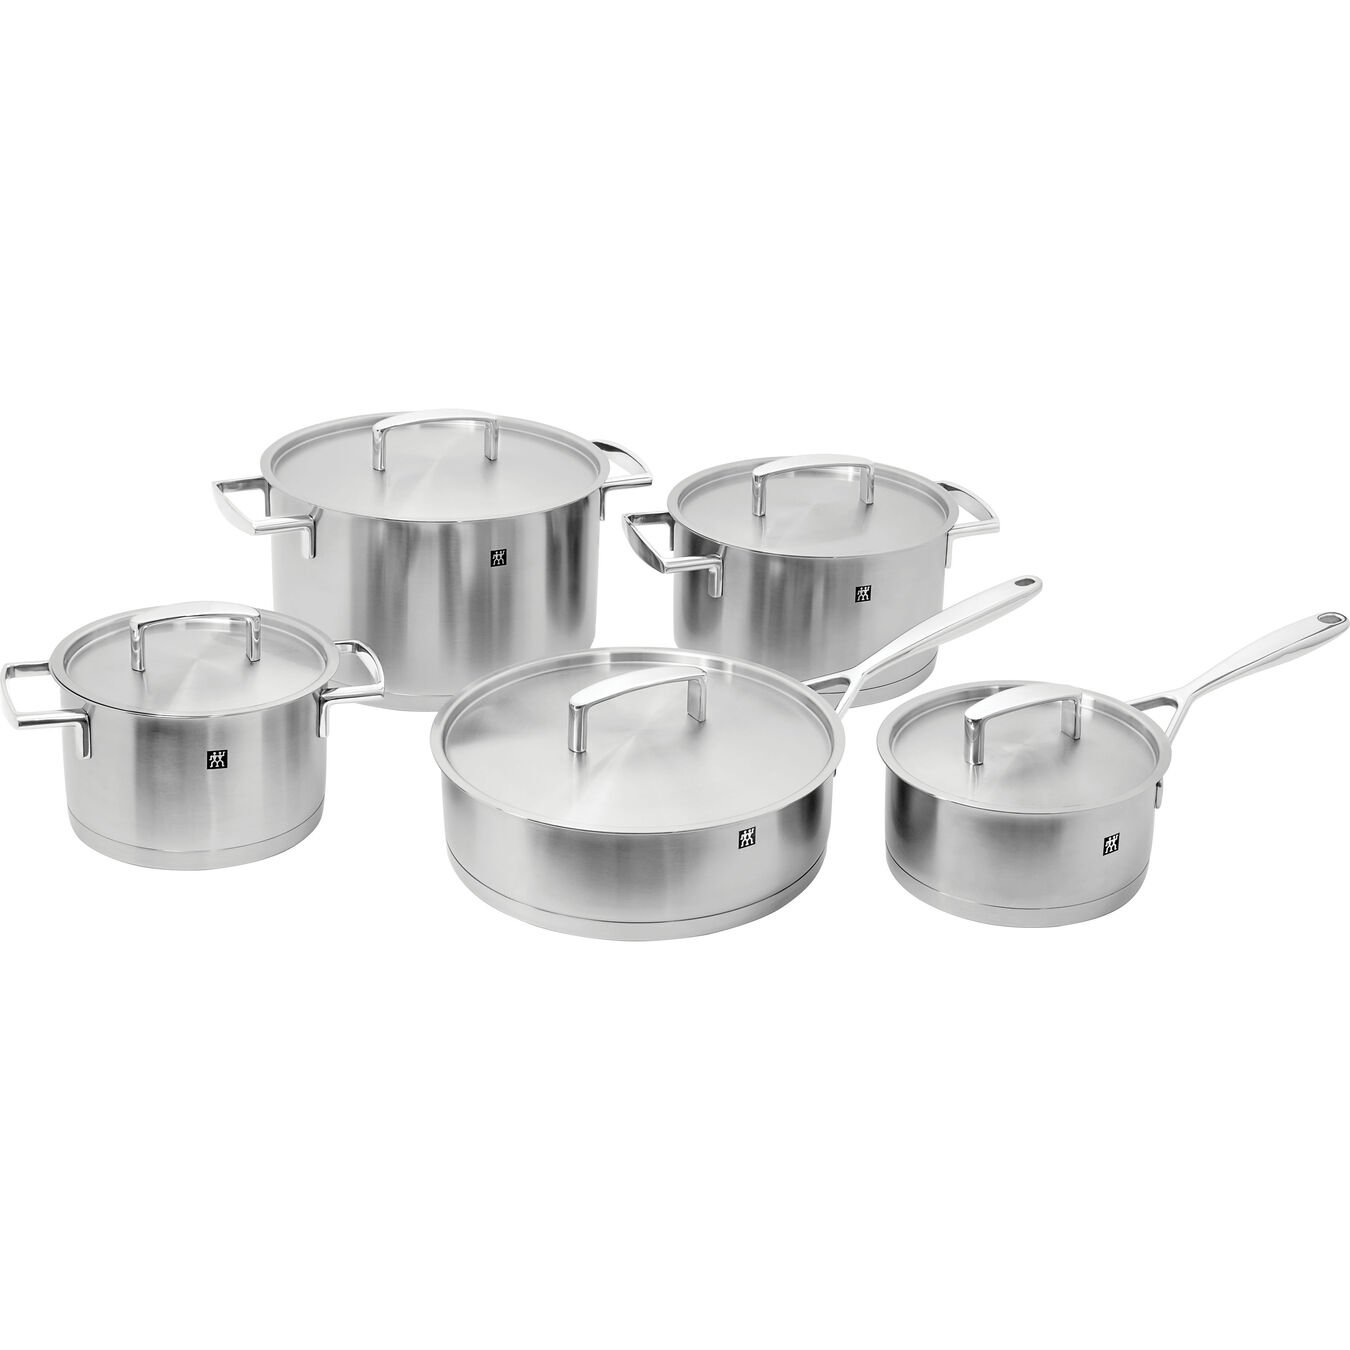 10 Piece 18/10 Stainless Steel Cookware set,,large 1